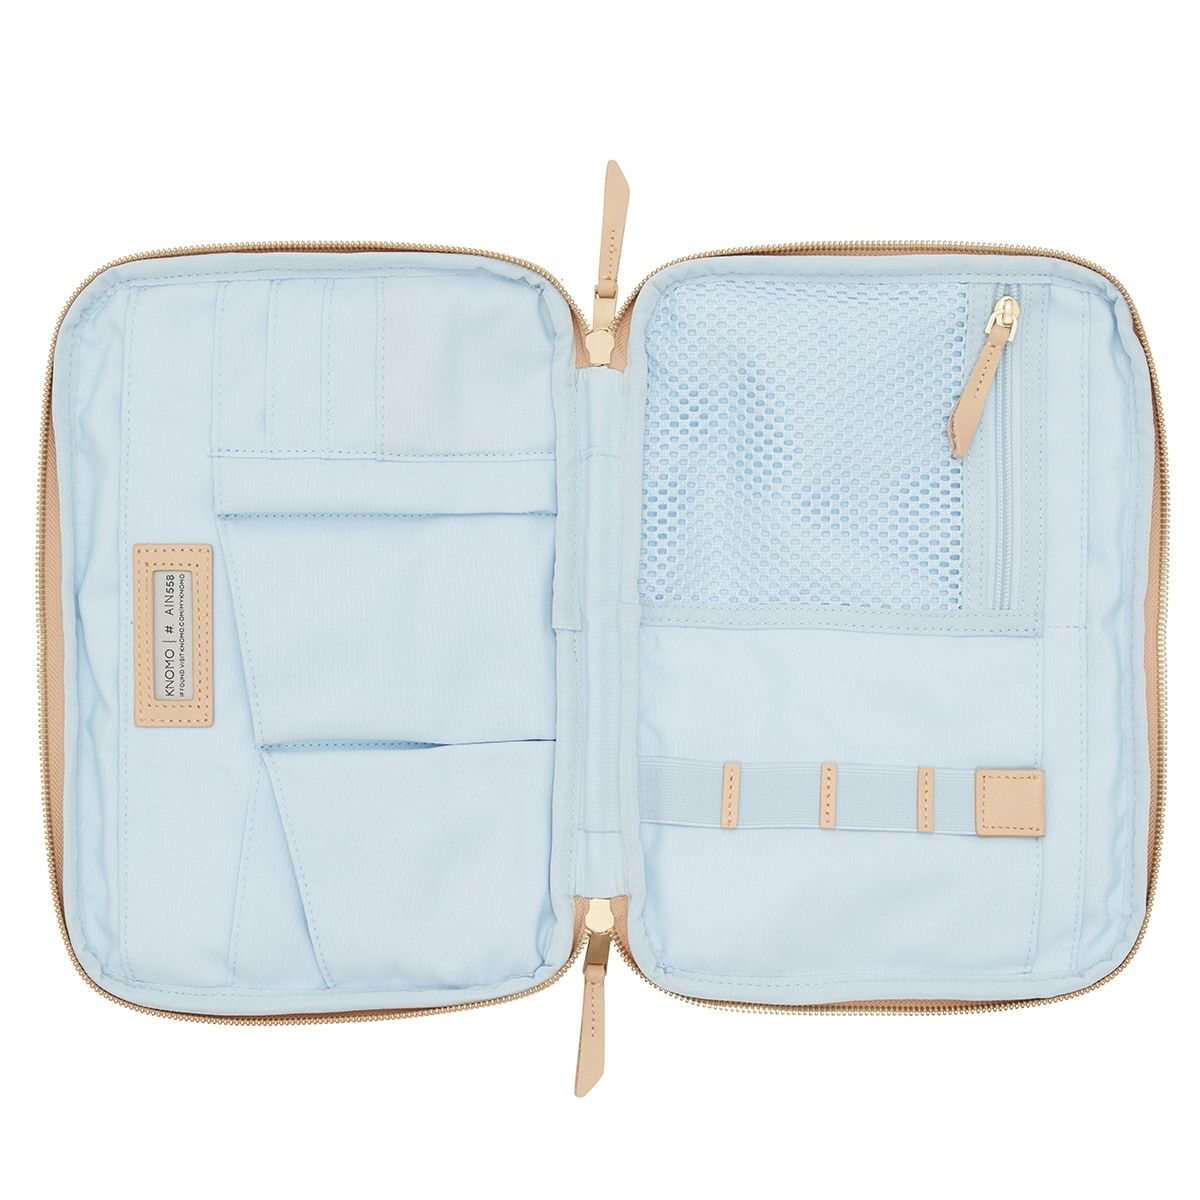 "KNOMO Knomad X-Body Organiser Tech Organiser Internal View Empty 10.5"" -  Trench Beige 